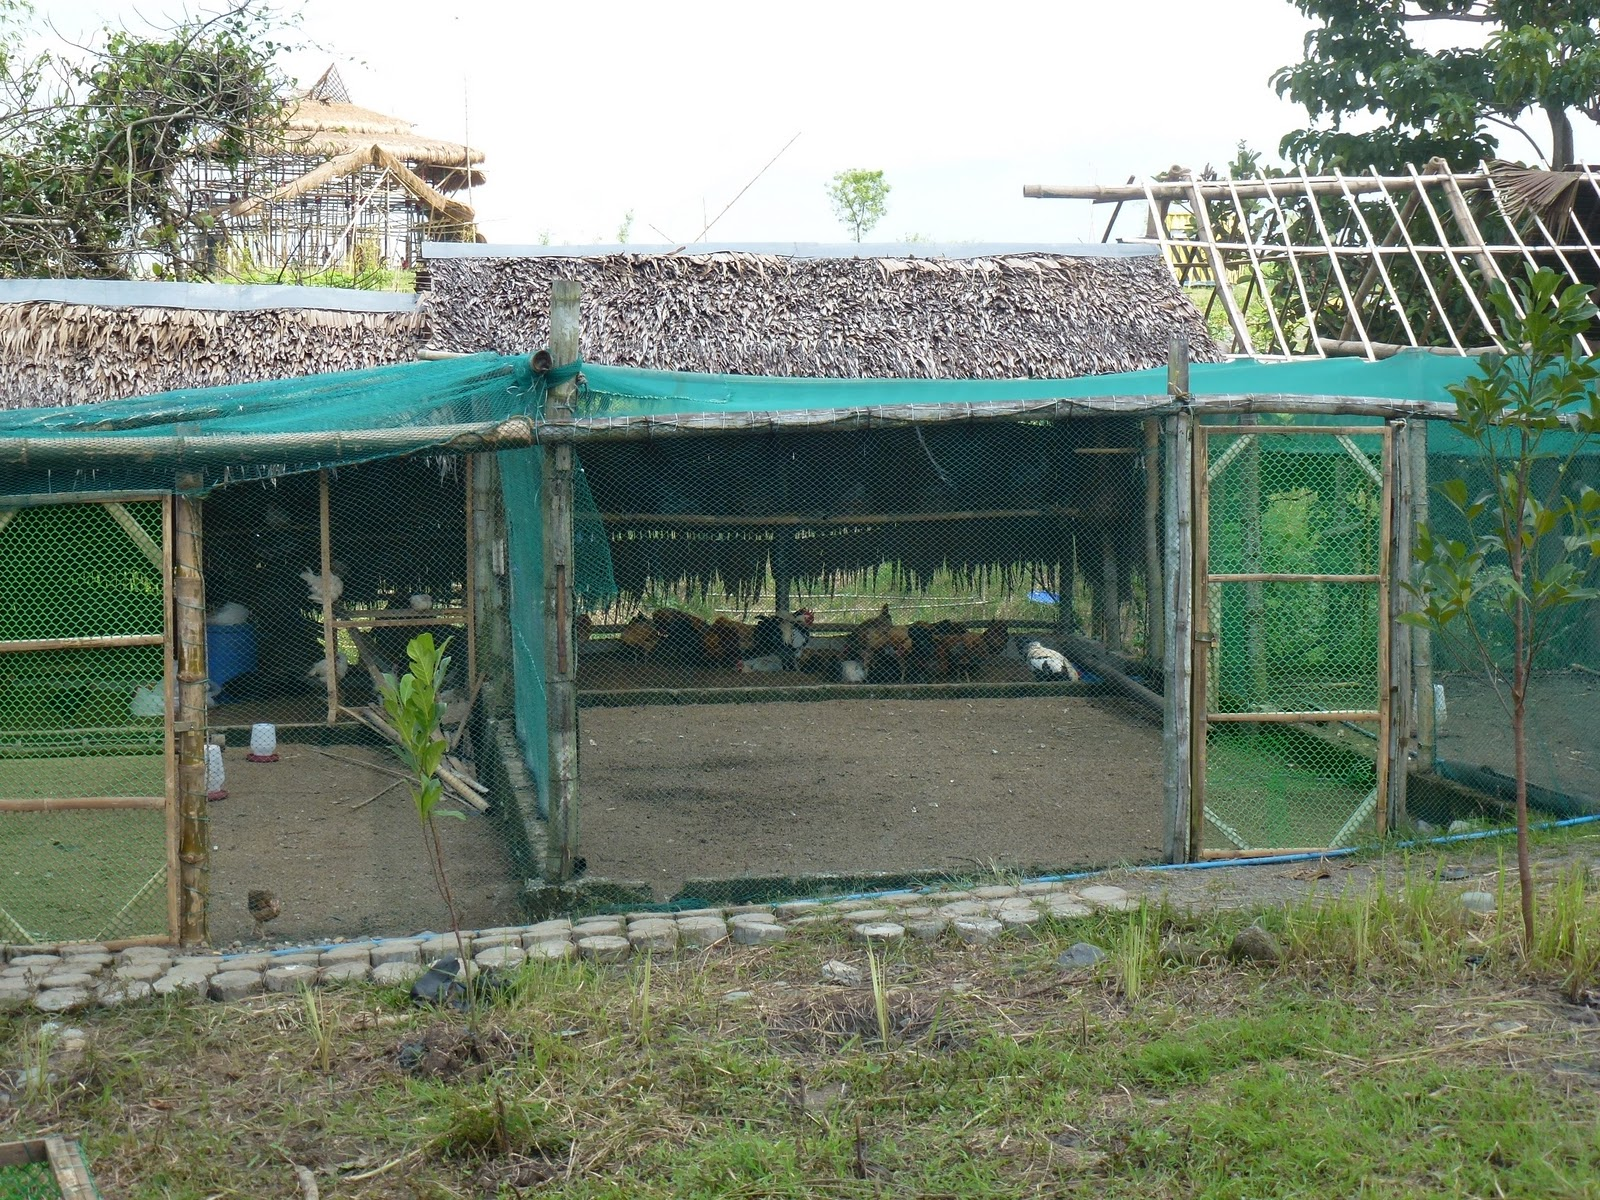 Existing ranging house for their current native chicken flocks